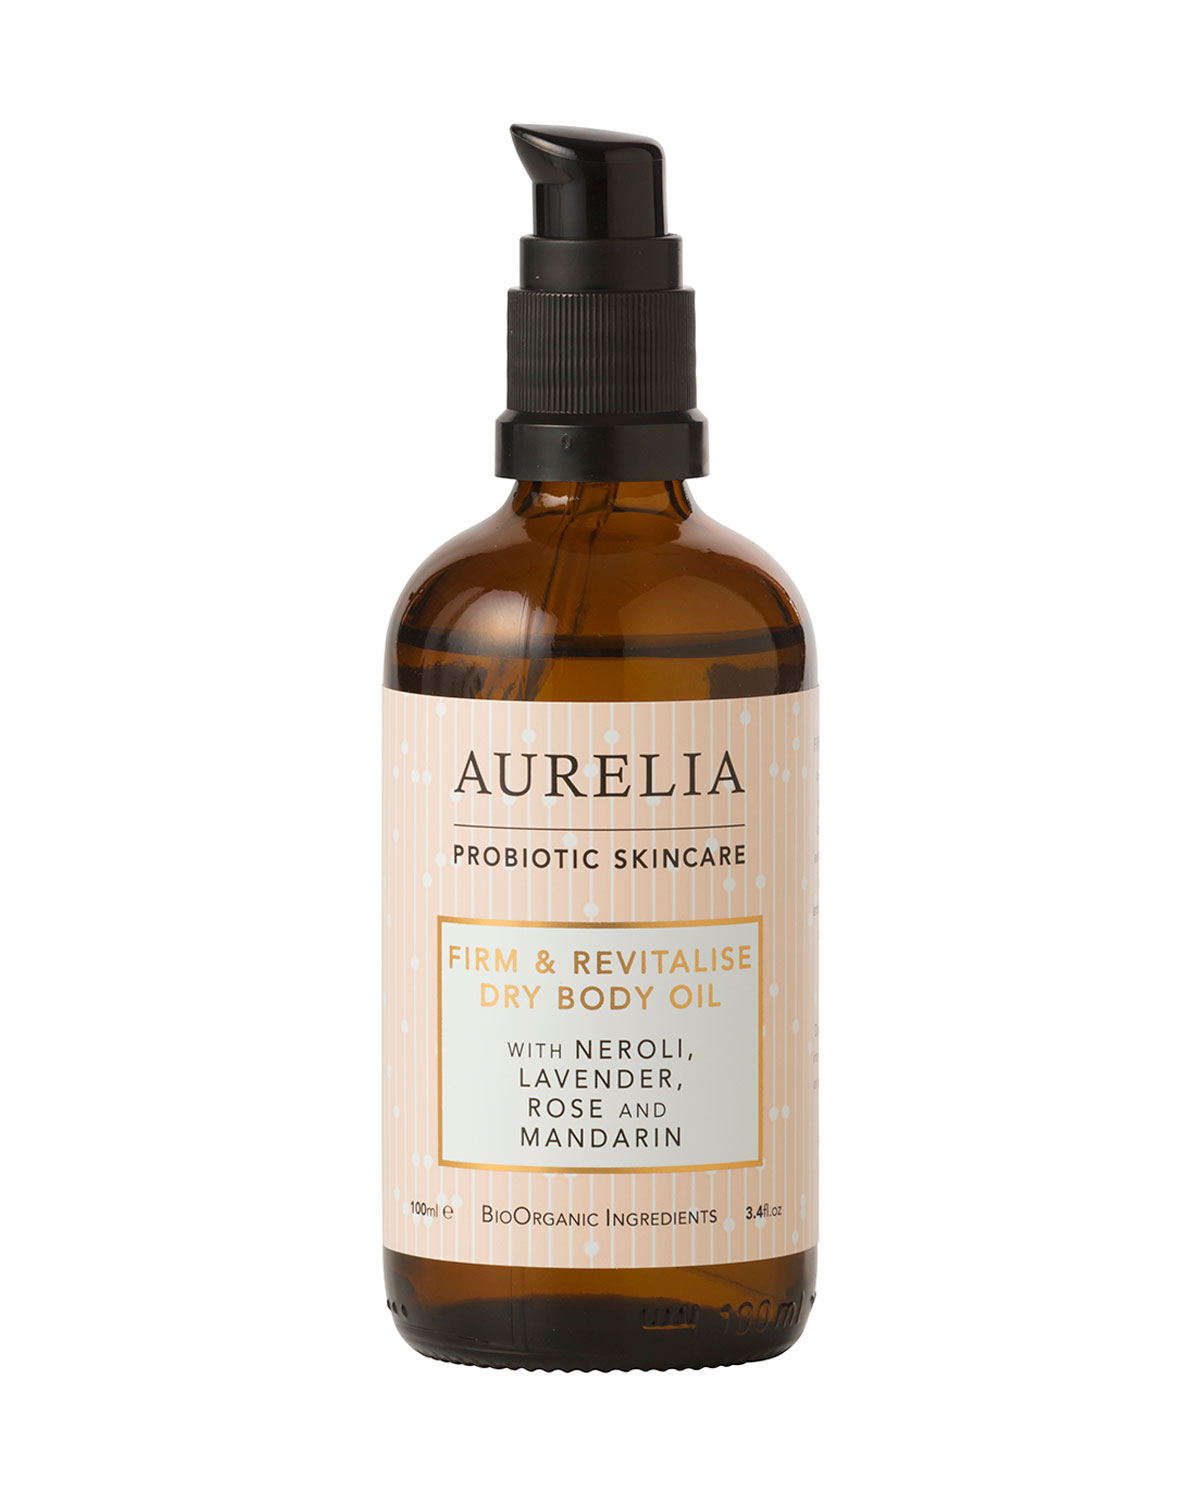 3.4 oz. Firm and Revitalize Dry Body Oil